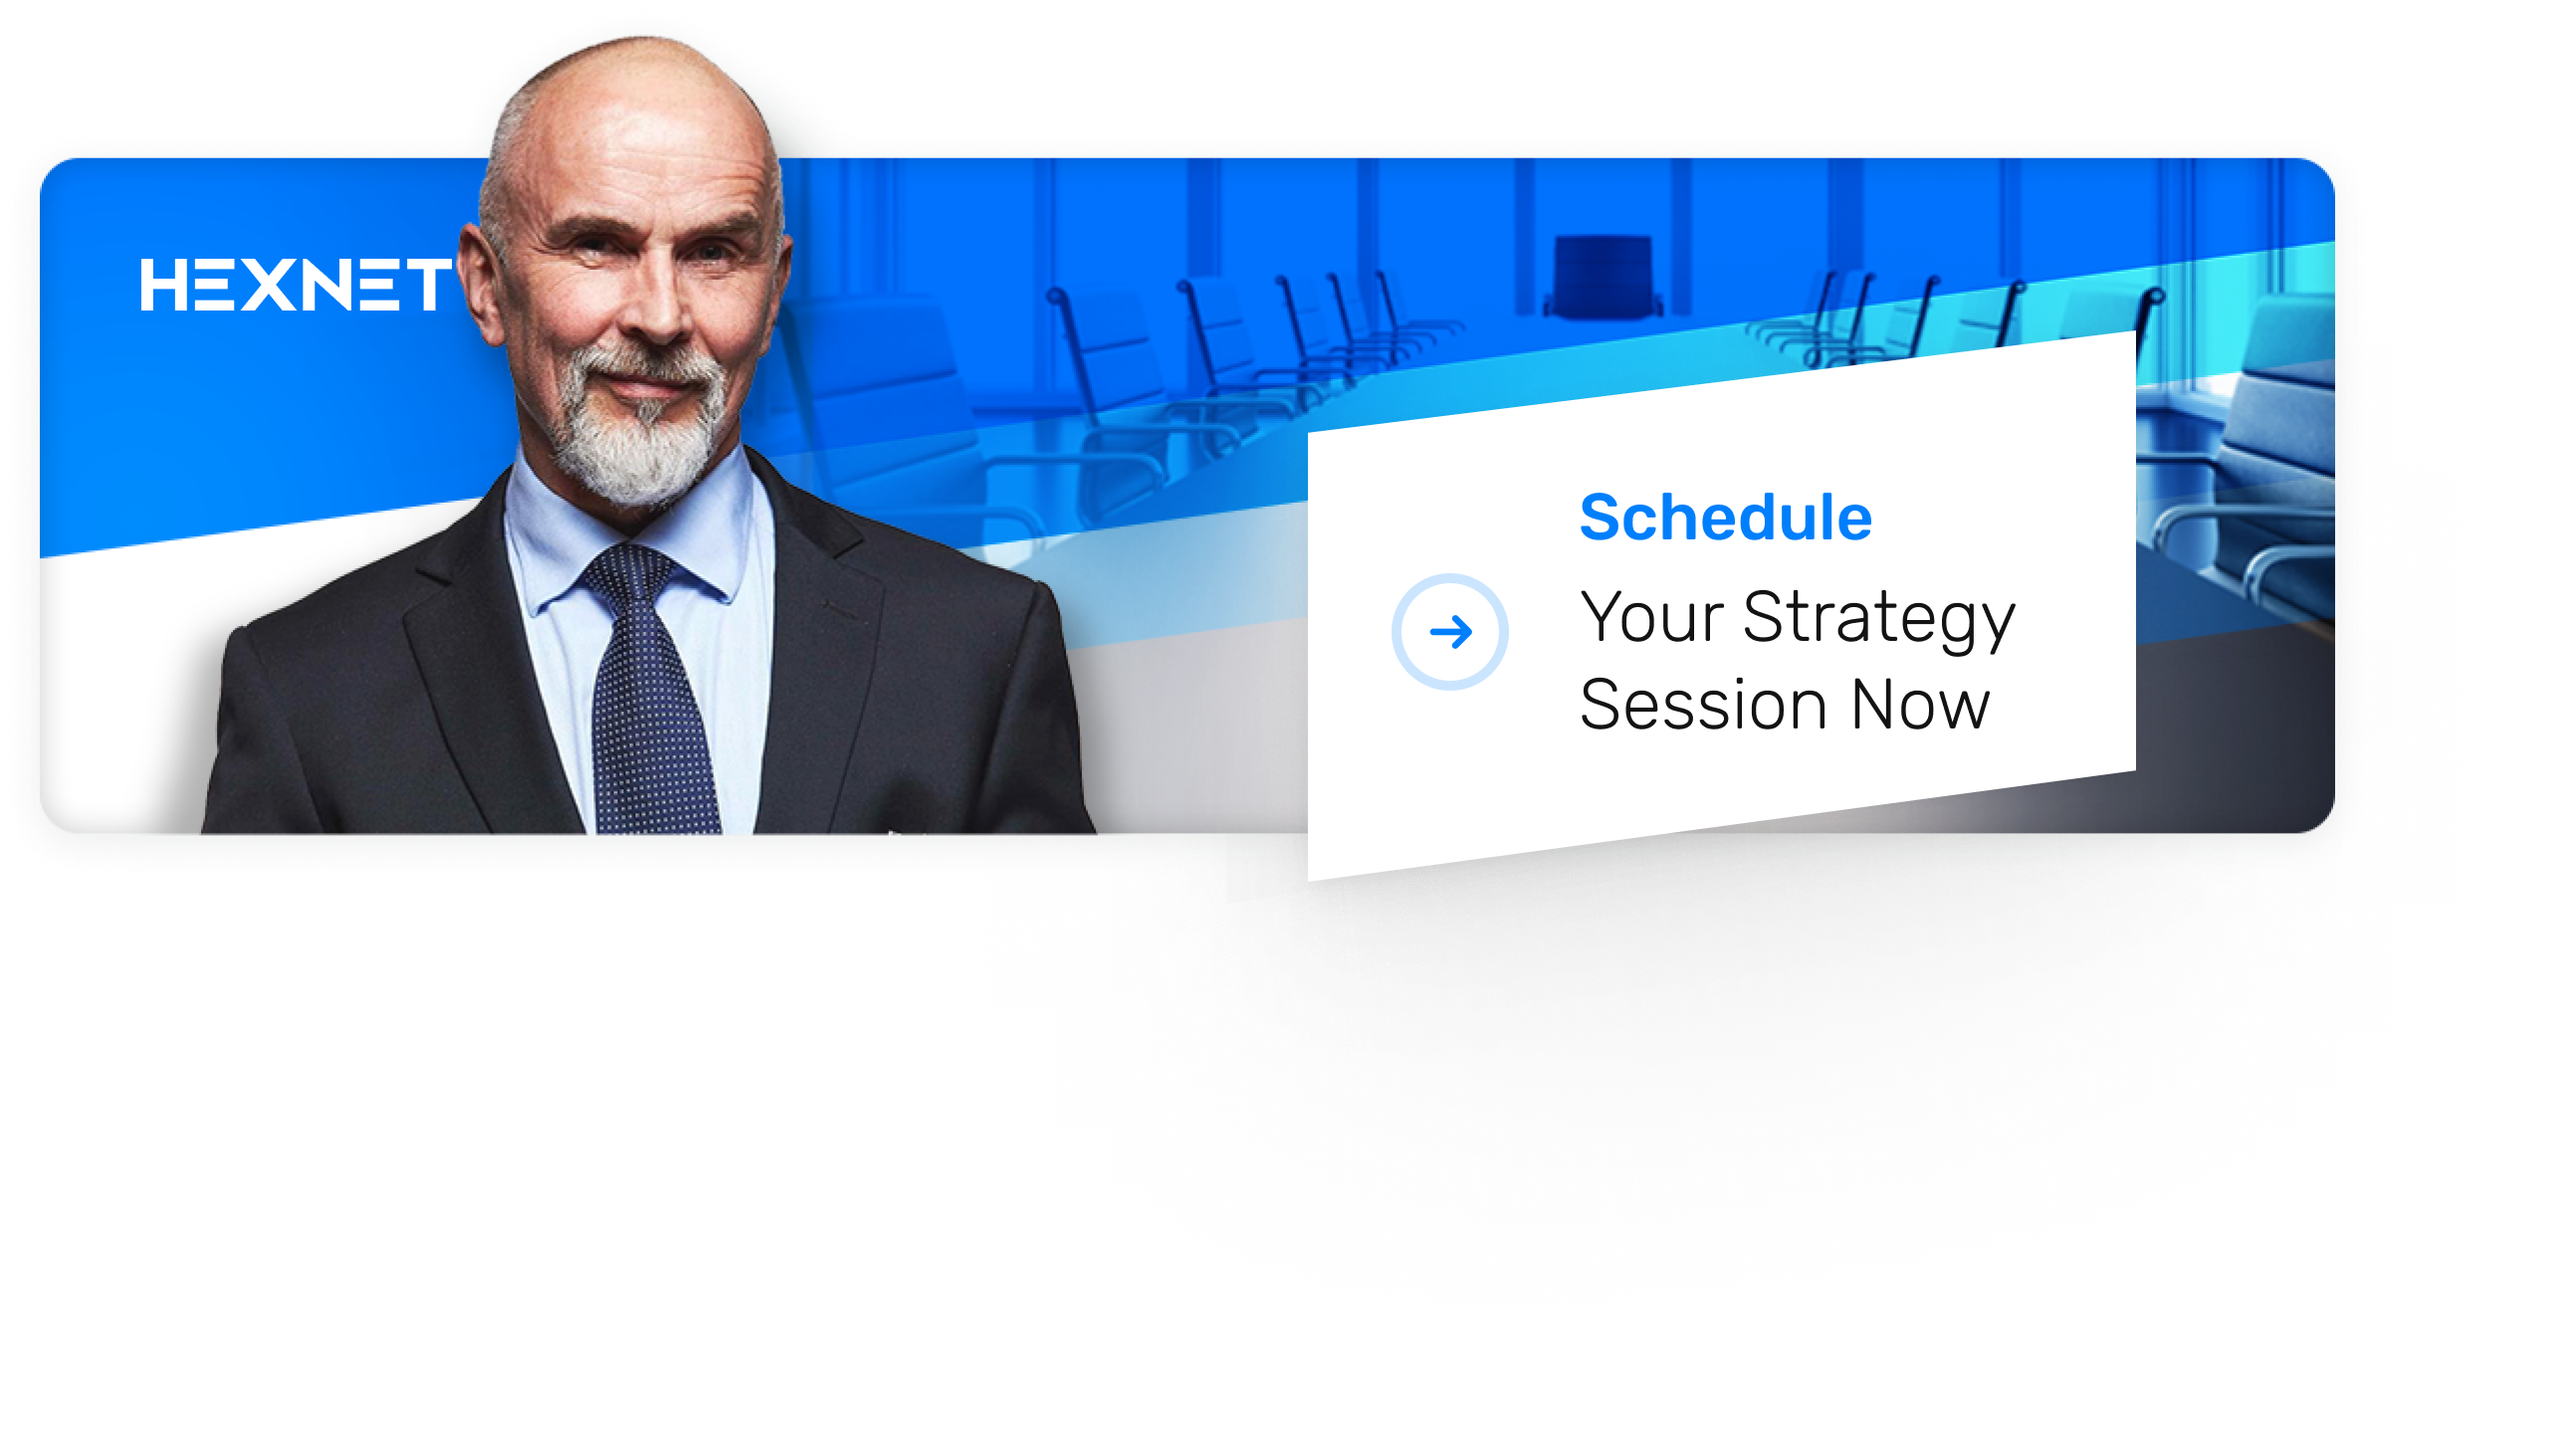 Schedule Digital Marketing Strategy Session with HEXNET